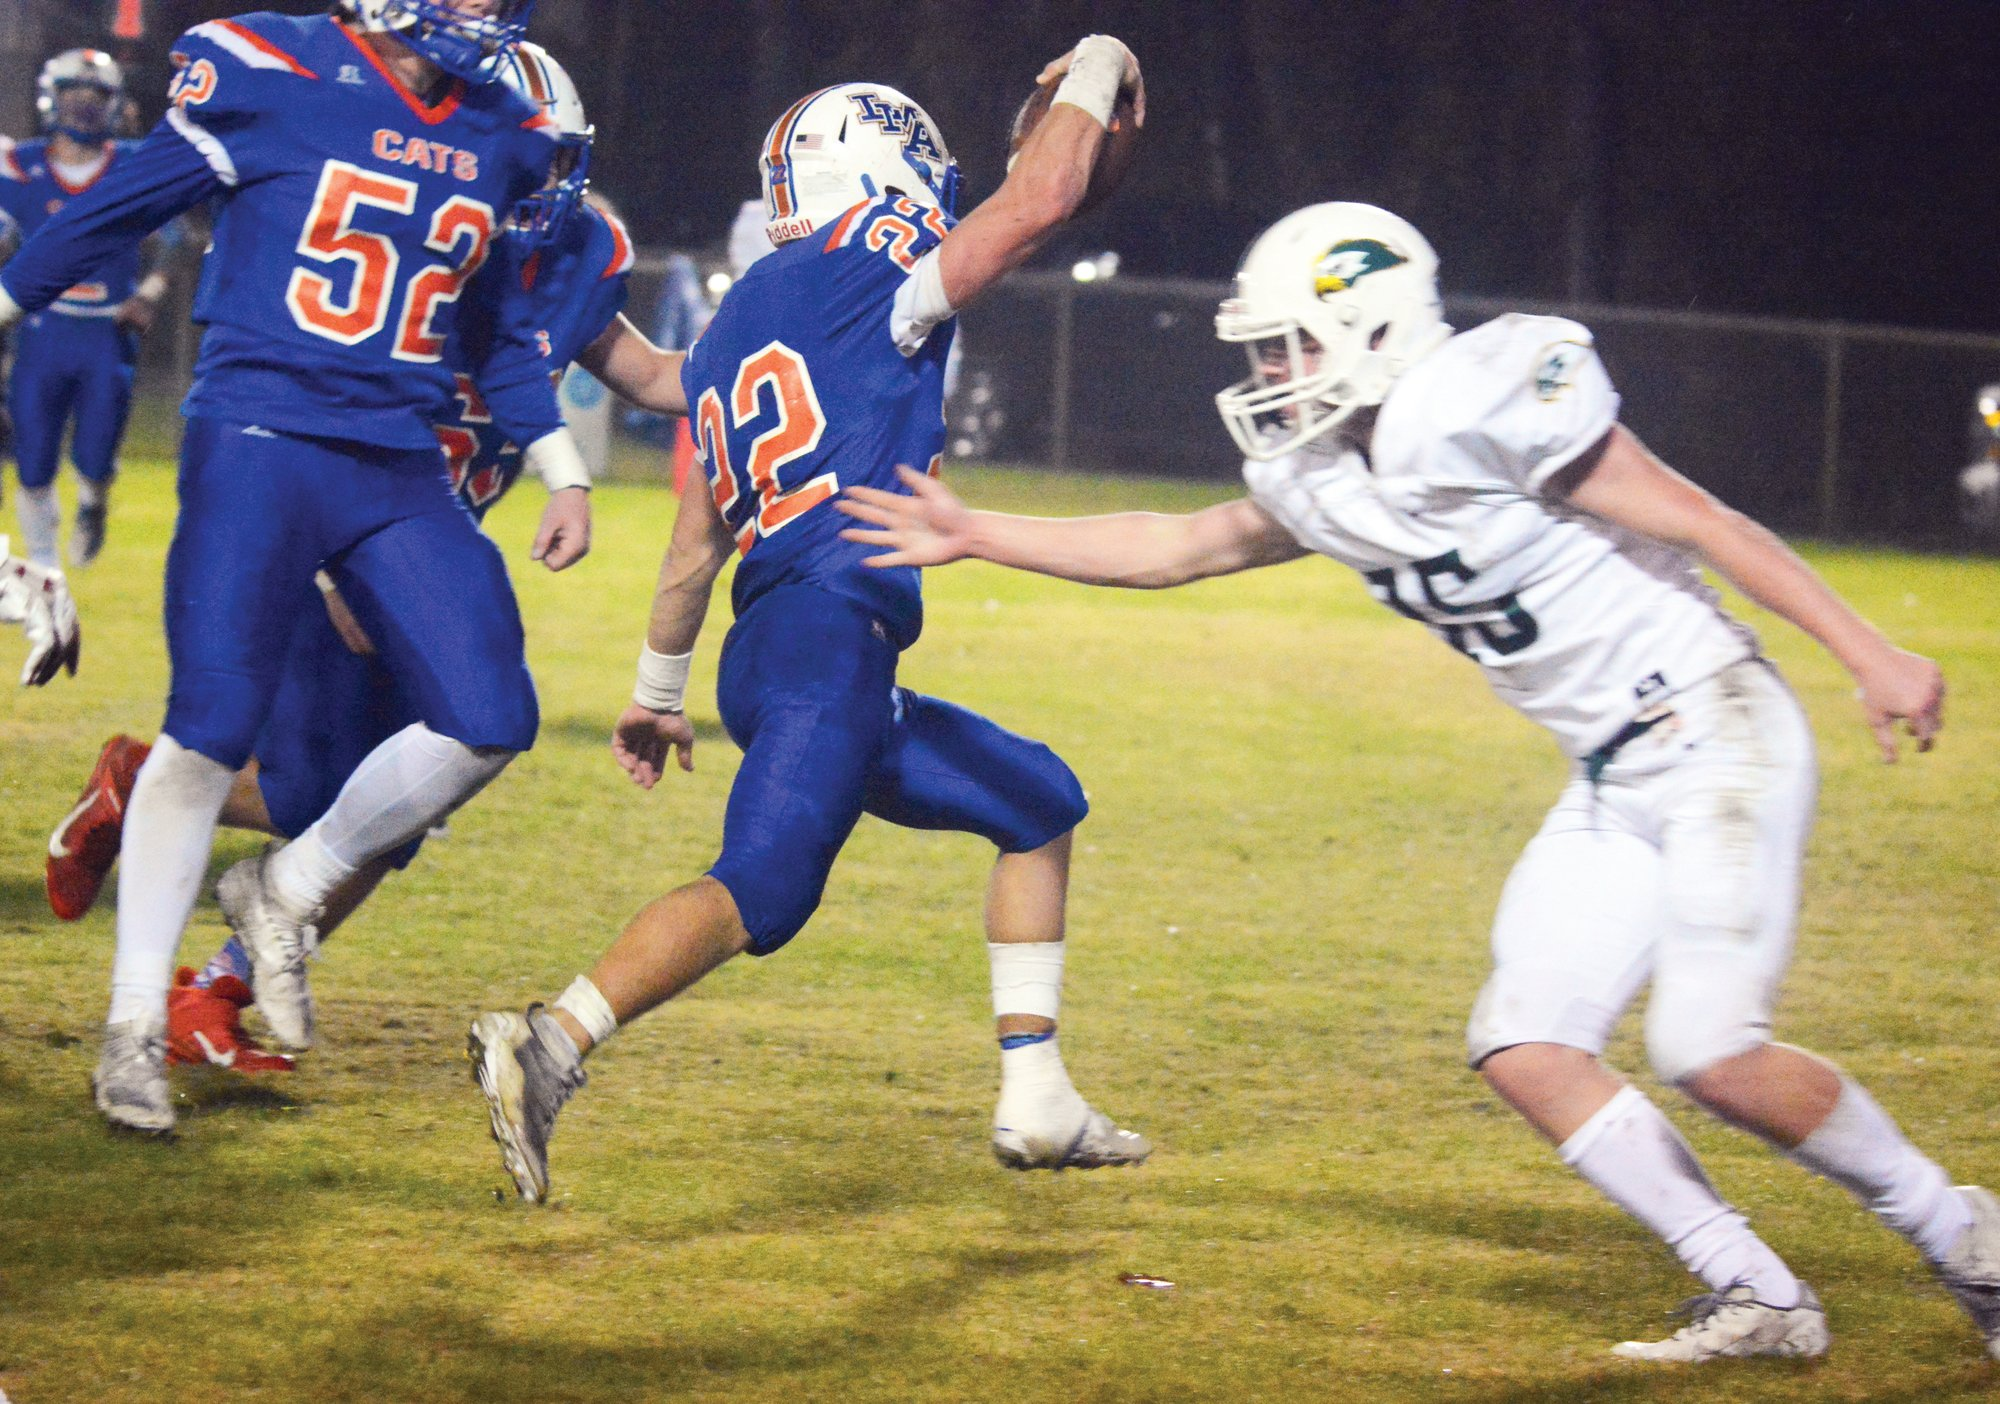 LMA running back Wyatt Rowland, center, scampers into the end zone for a two-point conversion against Ben Lippen on Friday night. Rowland rushed for 237 yards in the Swampcats' 48-42 victory to advance to the state championship next week against Hammond.